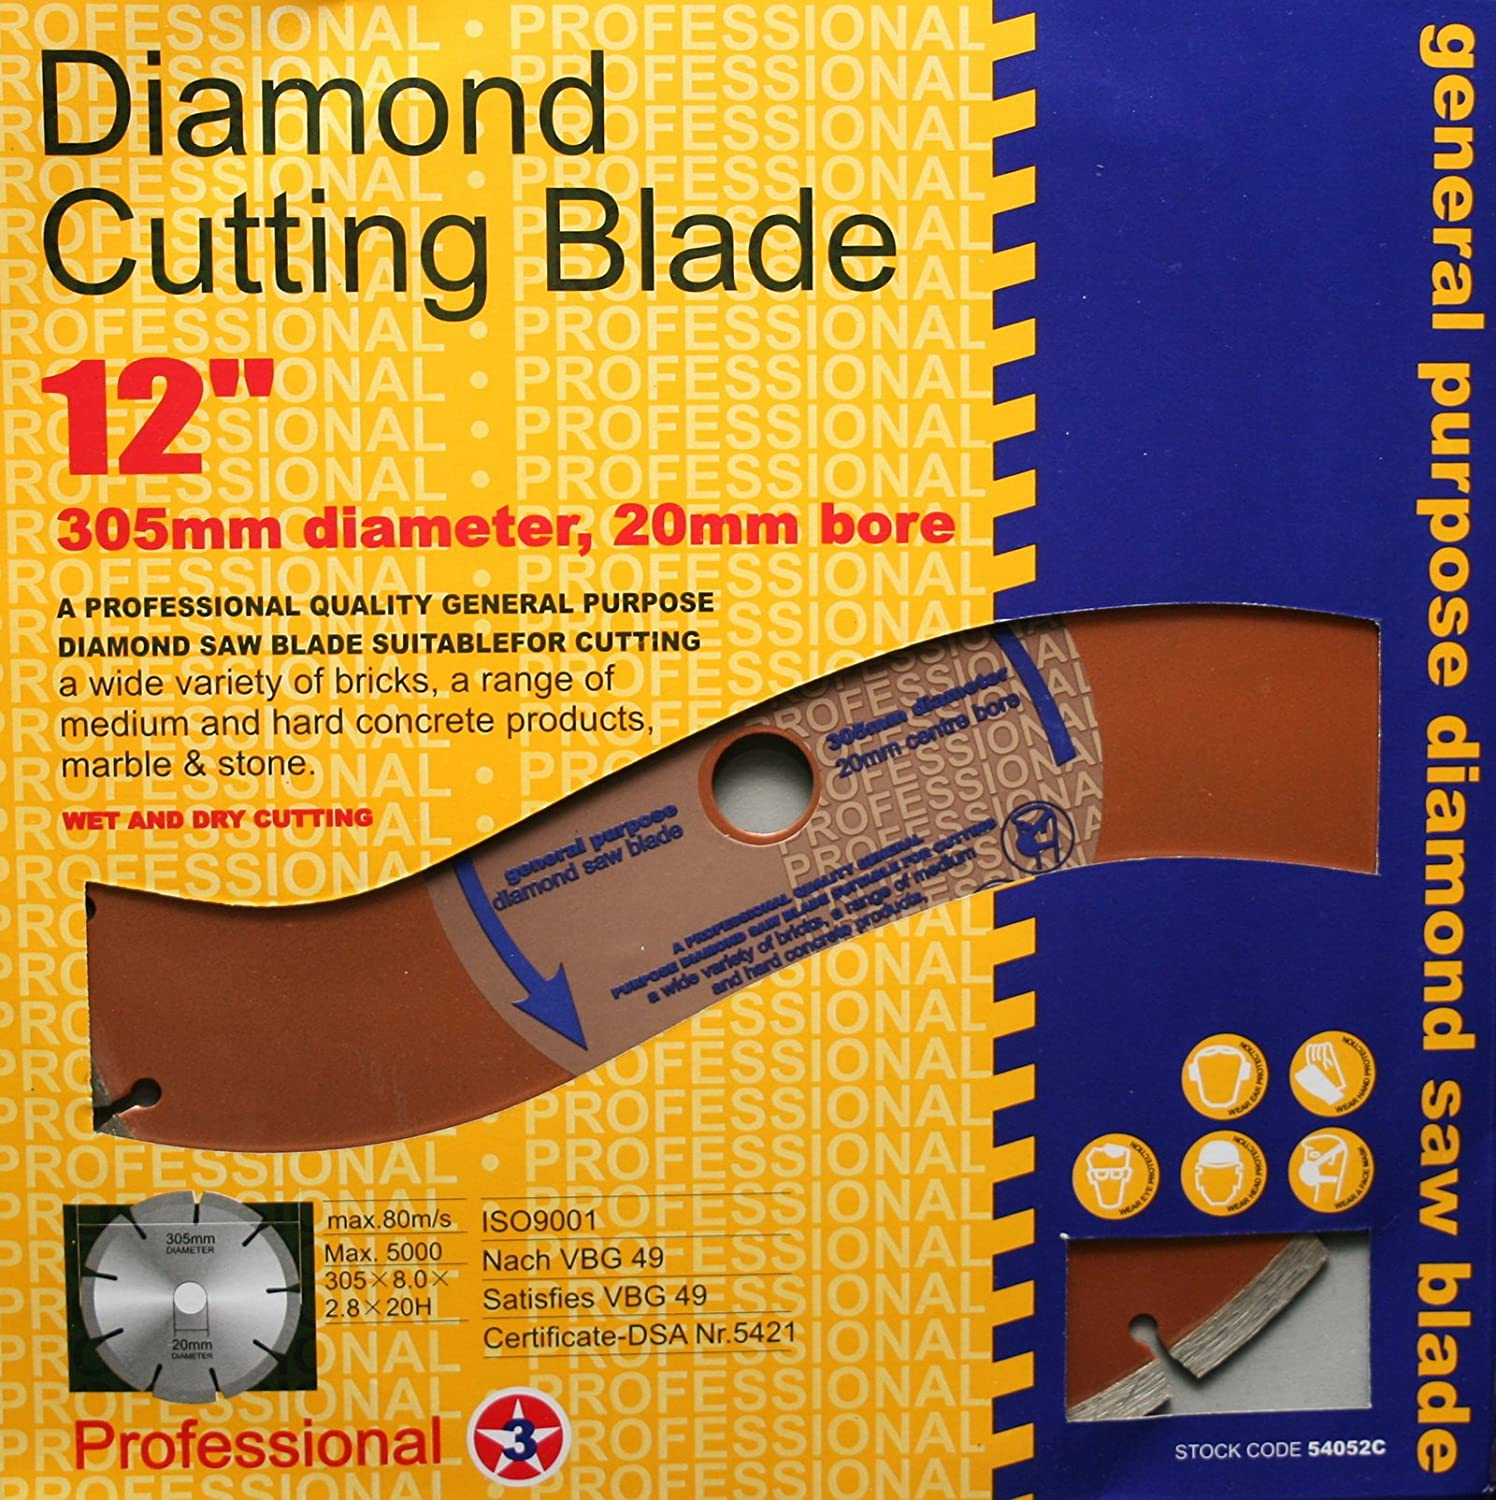 New 305 Mm 20 Mm Bore Professional Universal Diamond Cutting Disc Grinder 12 Inch